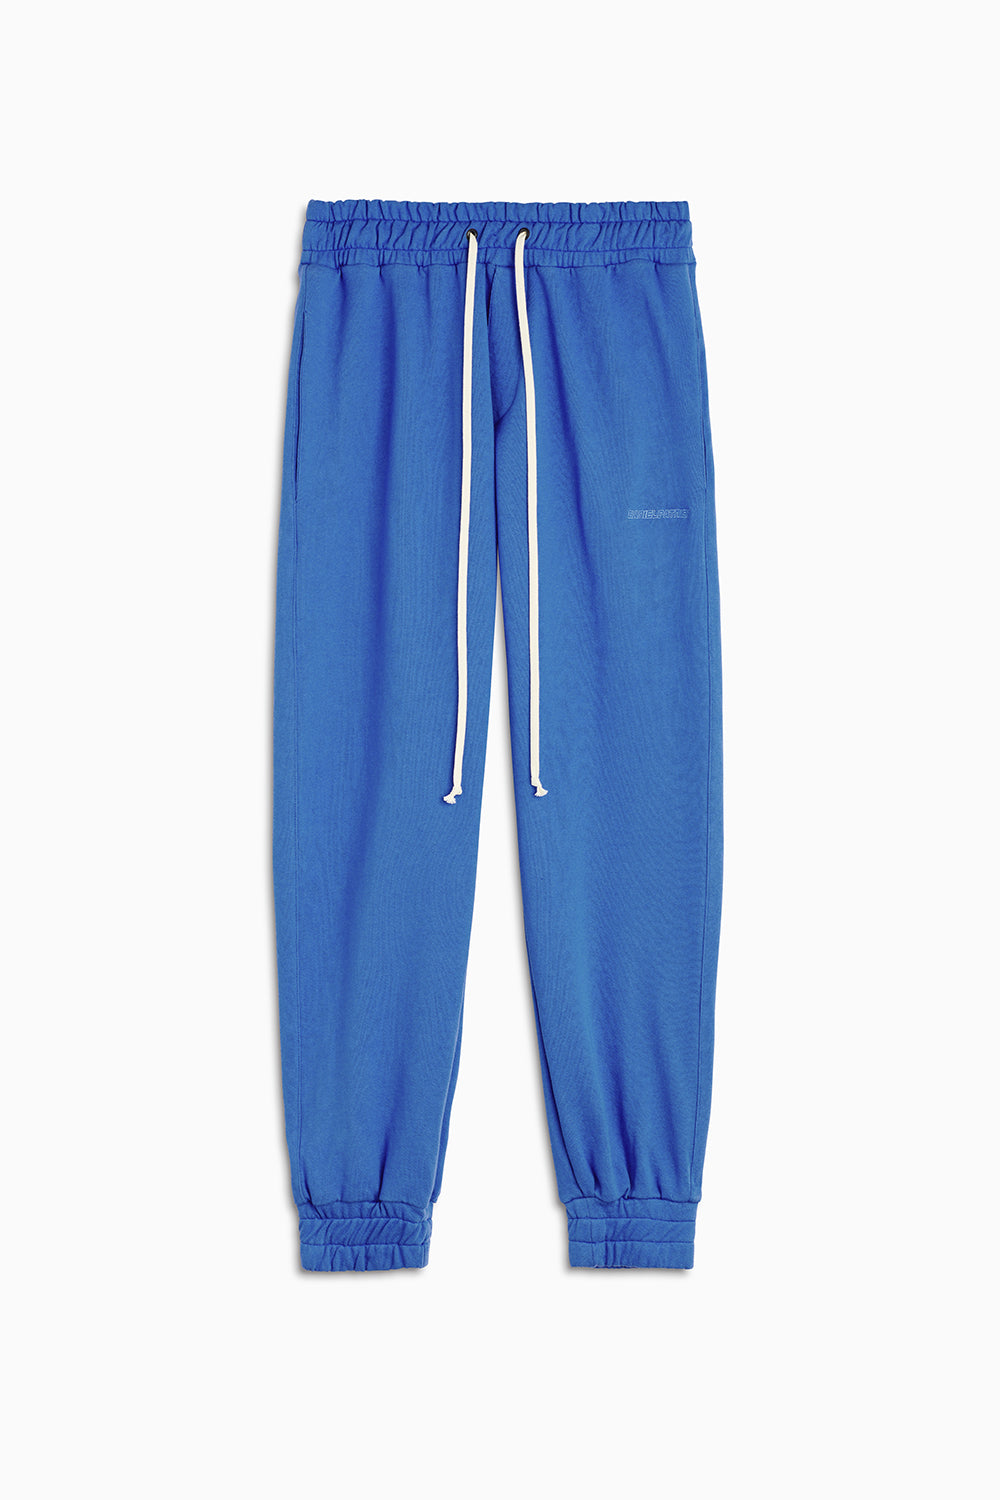 roaming sweatpants / vintage blue